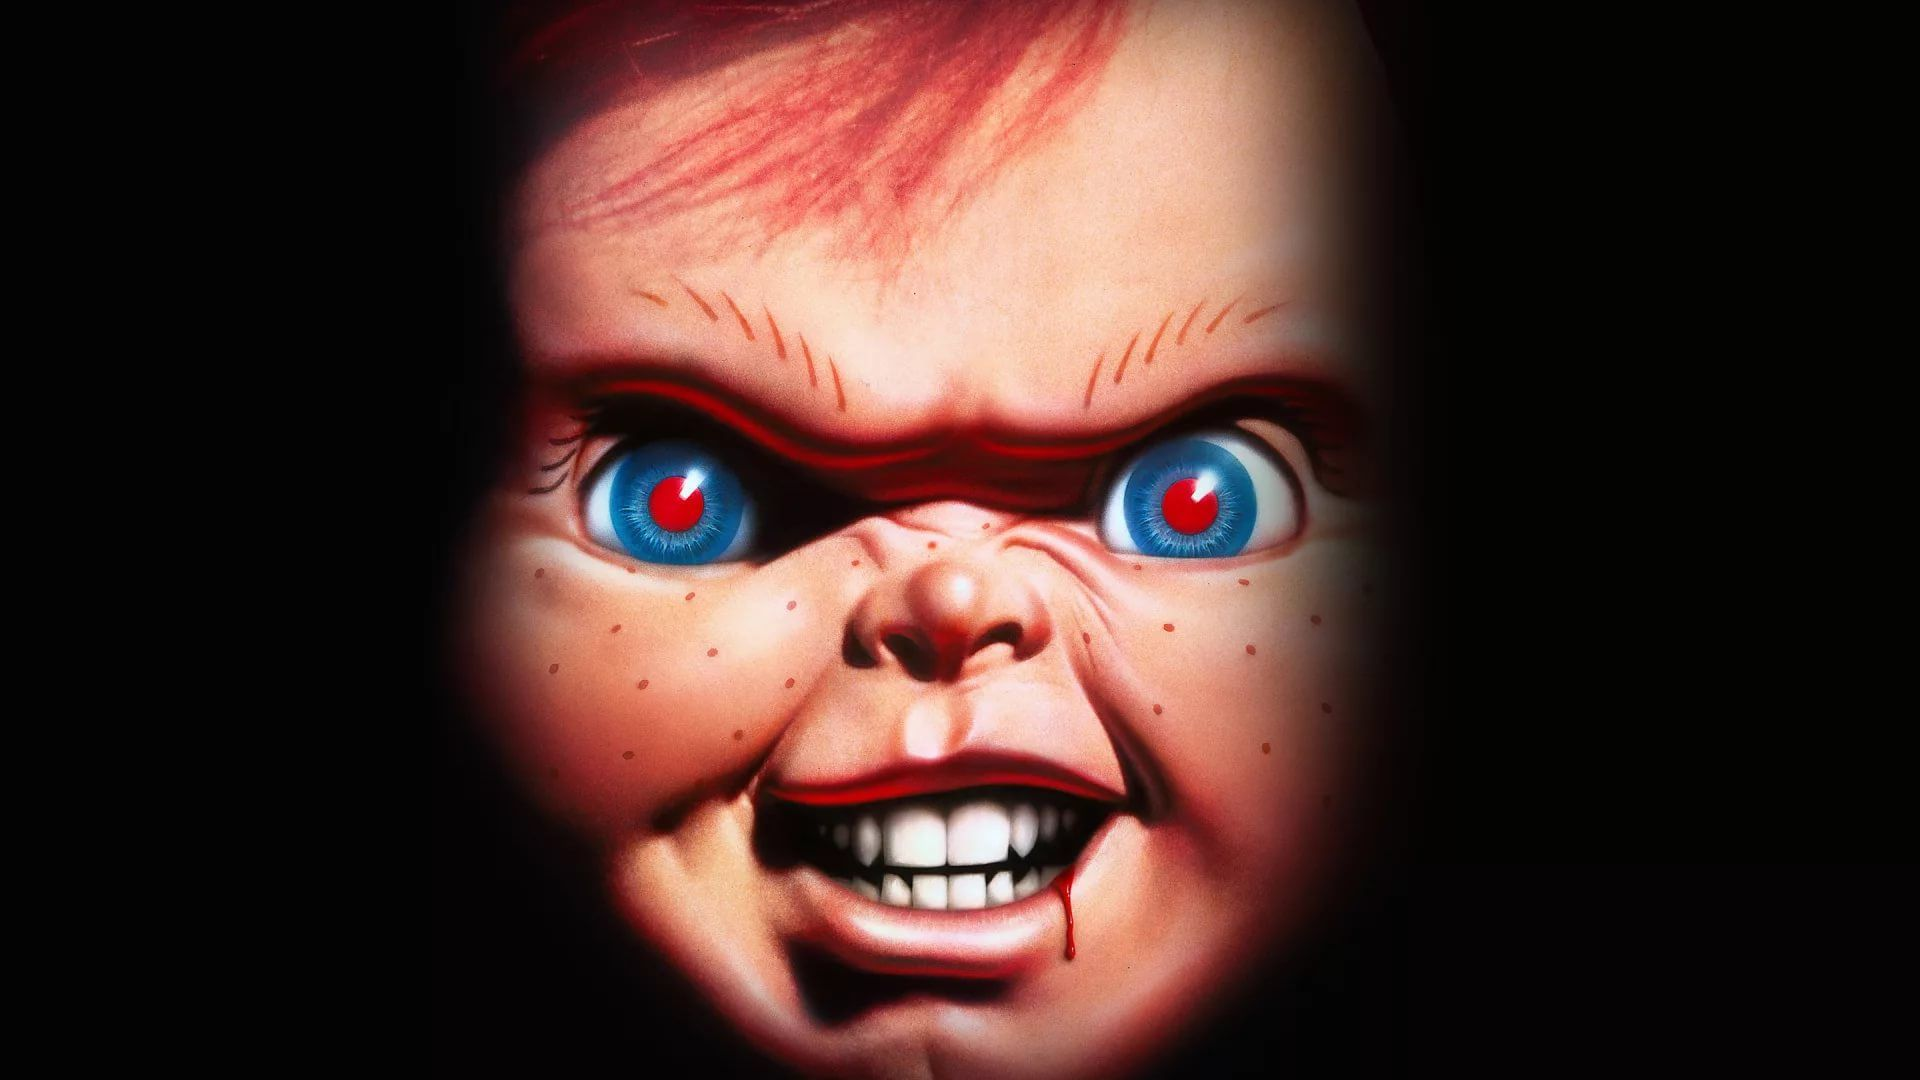 Chucky Doll hd wallpaper for laptop